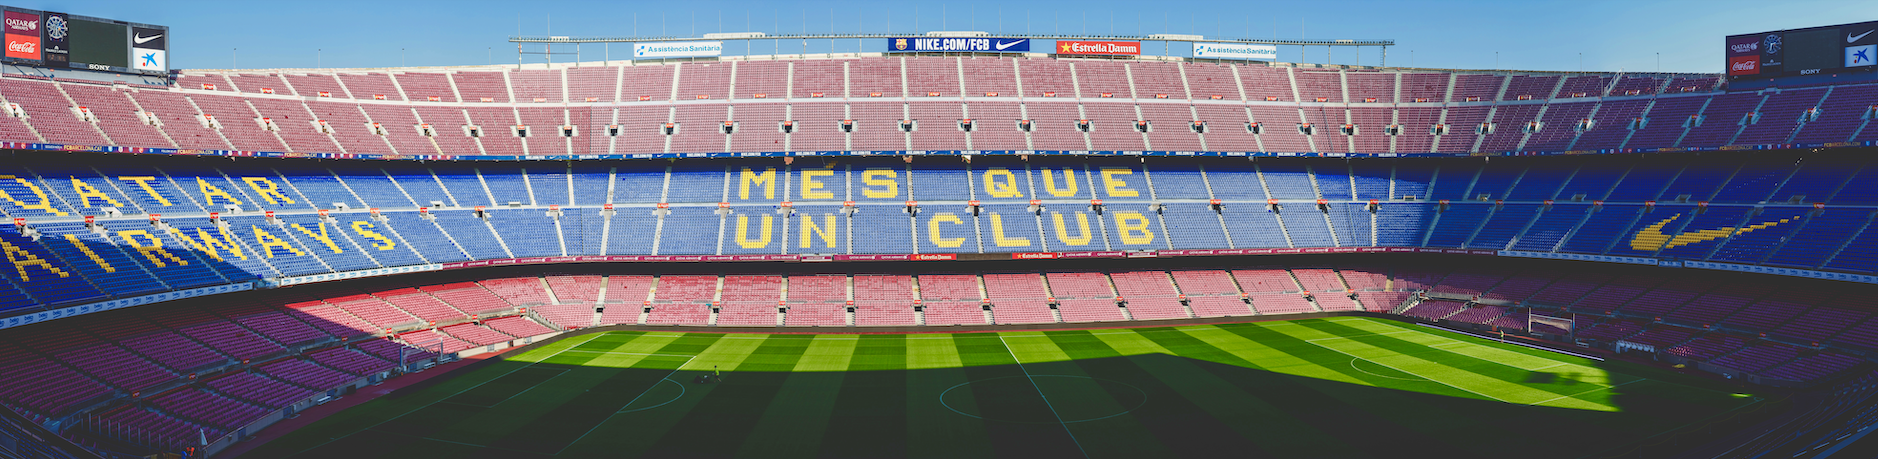 Camp Nou El Clasico Tickets & Packages Travel Guide